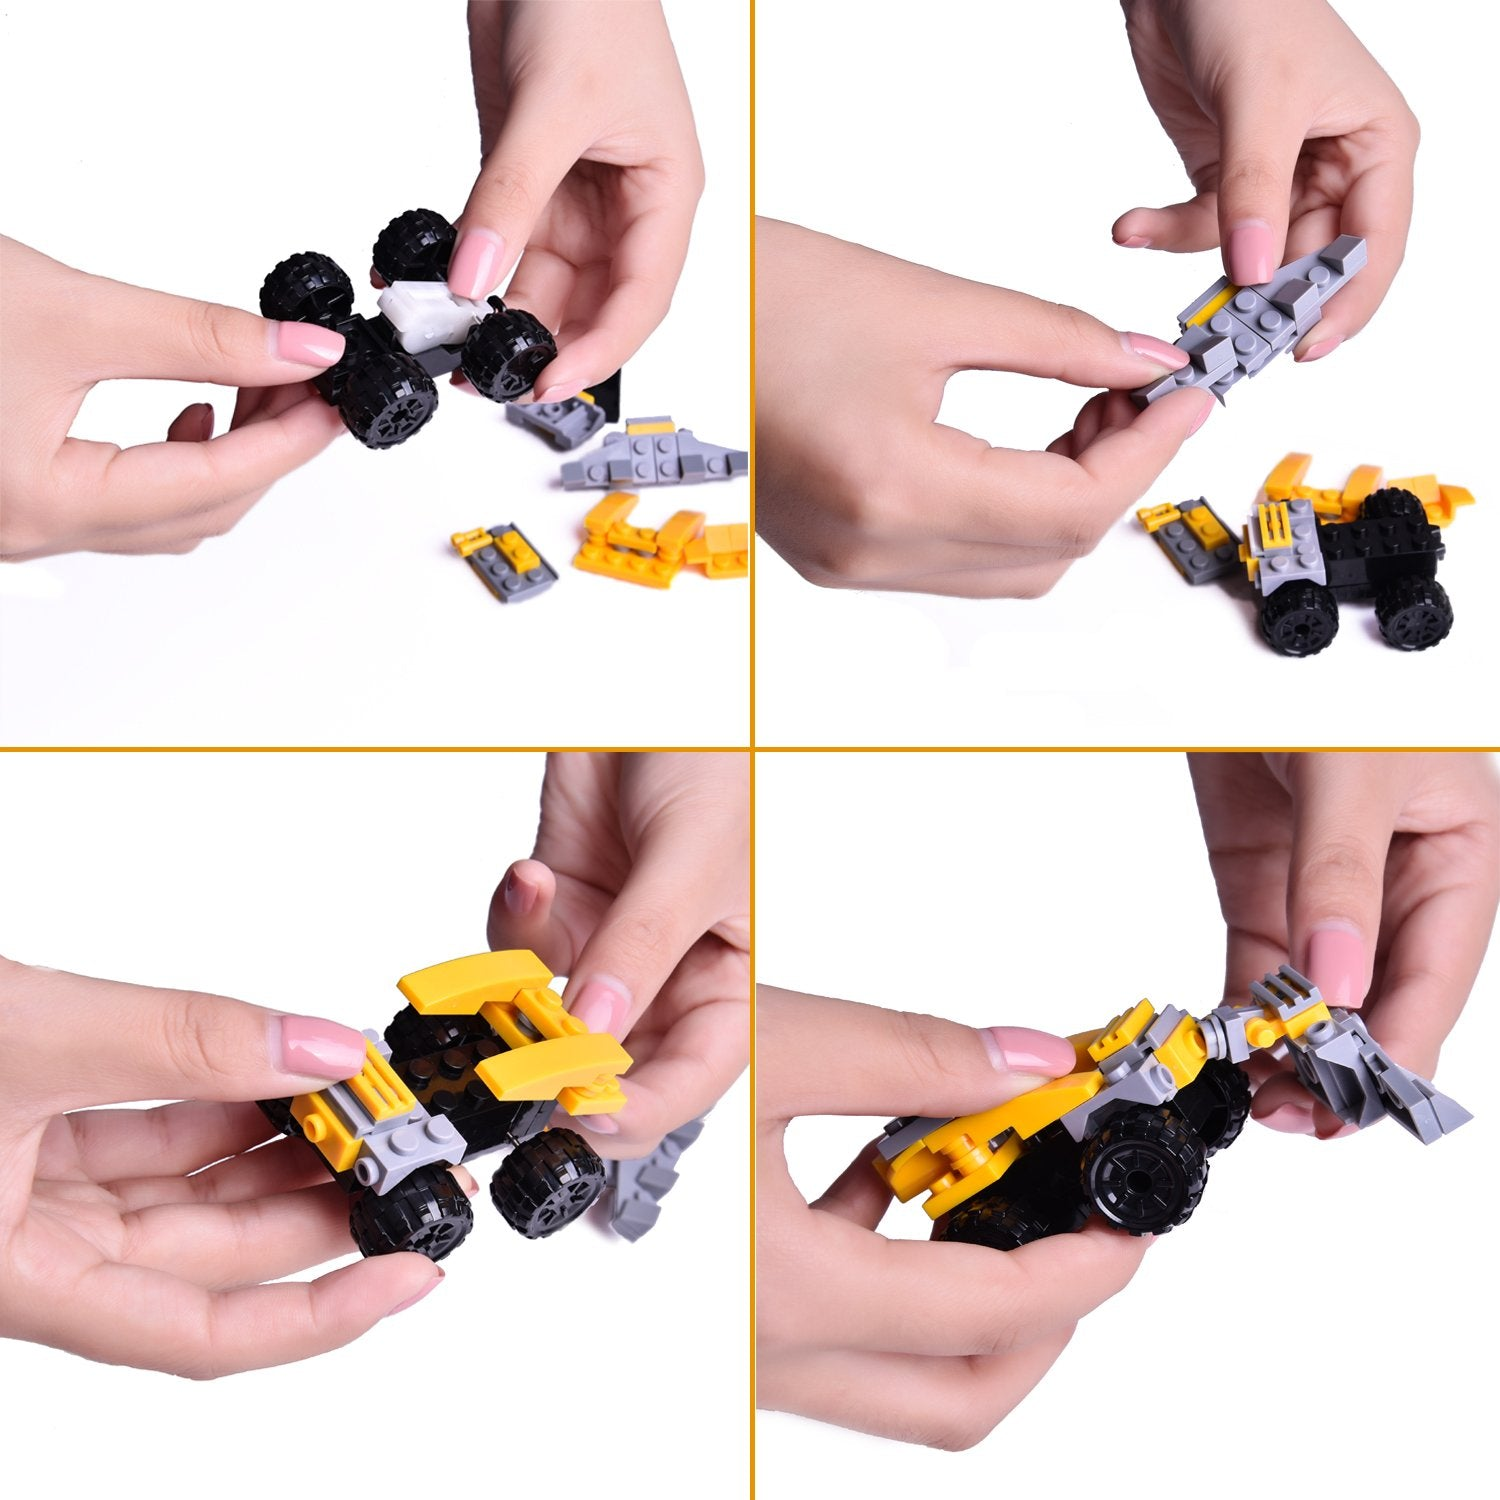 Mini Building Blocks Cars for Boys and Girls, Goodie Bags Fillers, Birthday Party Favors, Kids Prizes, 4 Boxes